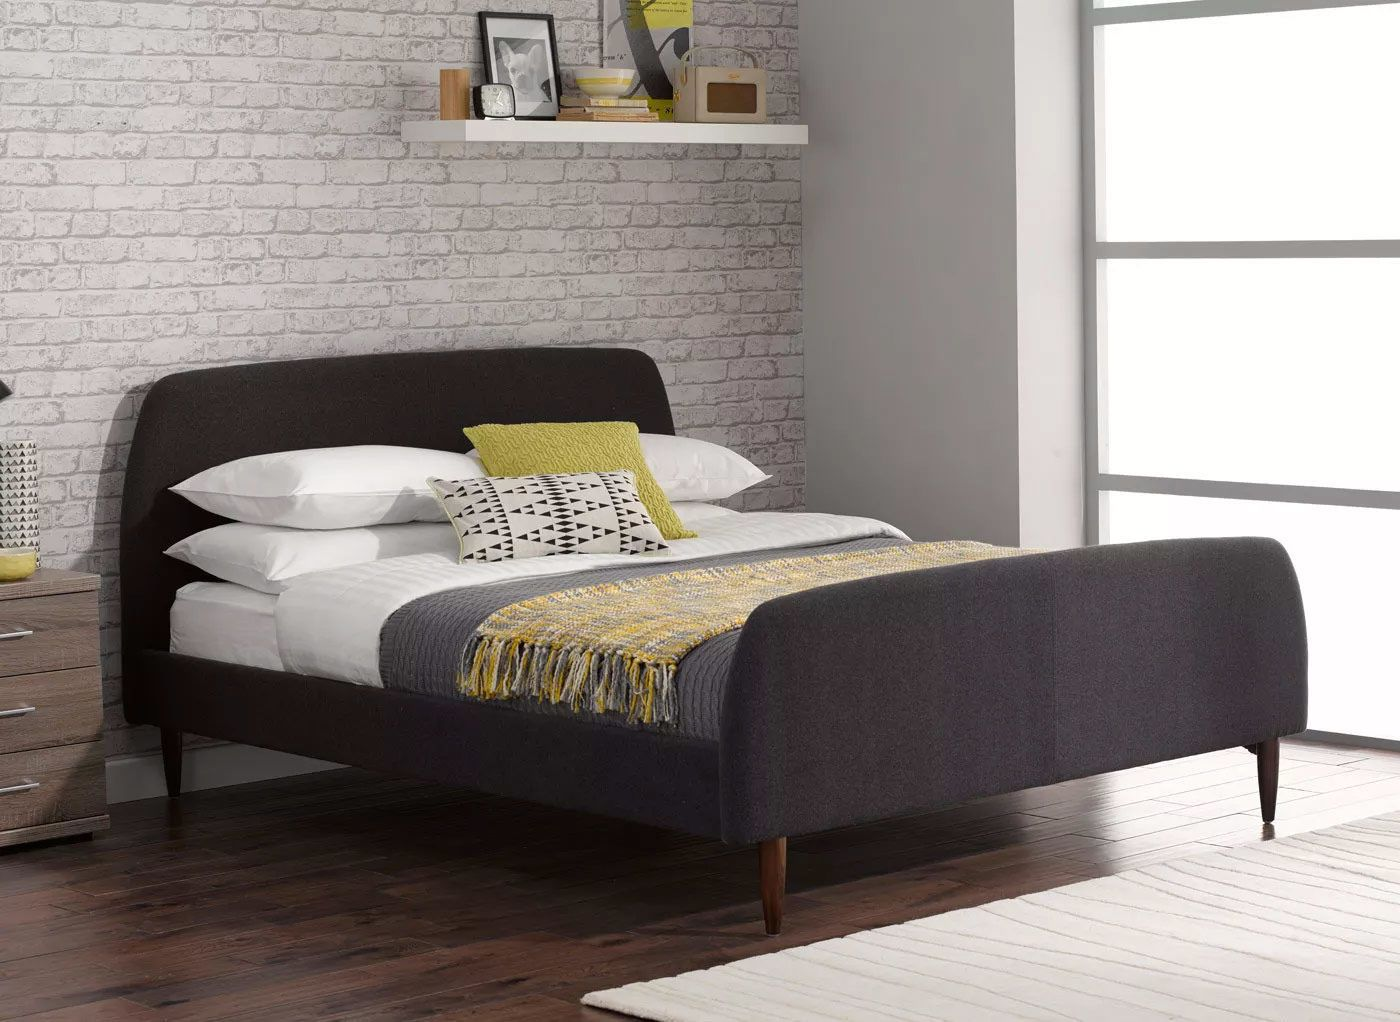 Uncategorized Dreams Metal Beds remy double bed frame todo para mi hijo pinterest frames wide range of quality single king size upholstered beds online all with free delivery from dreams britains leadi